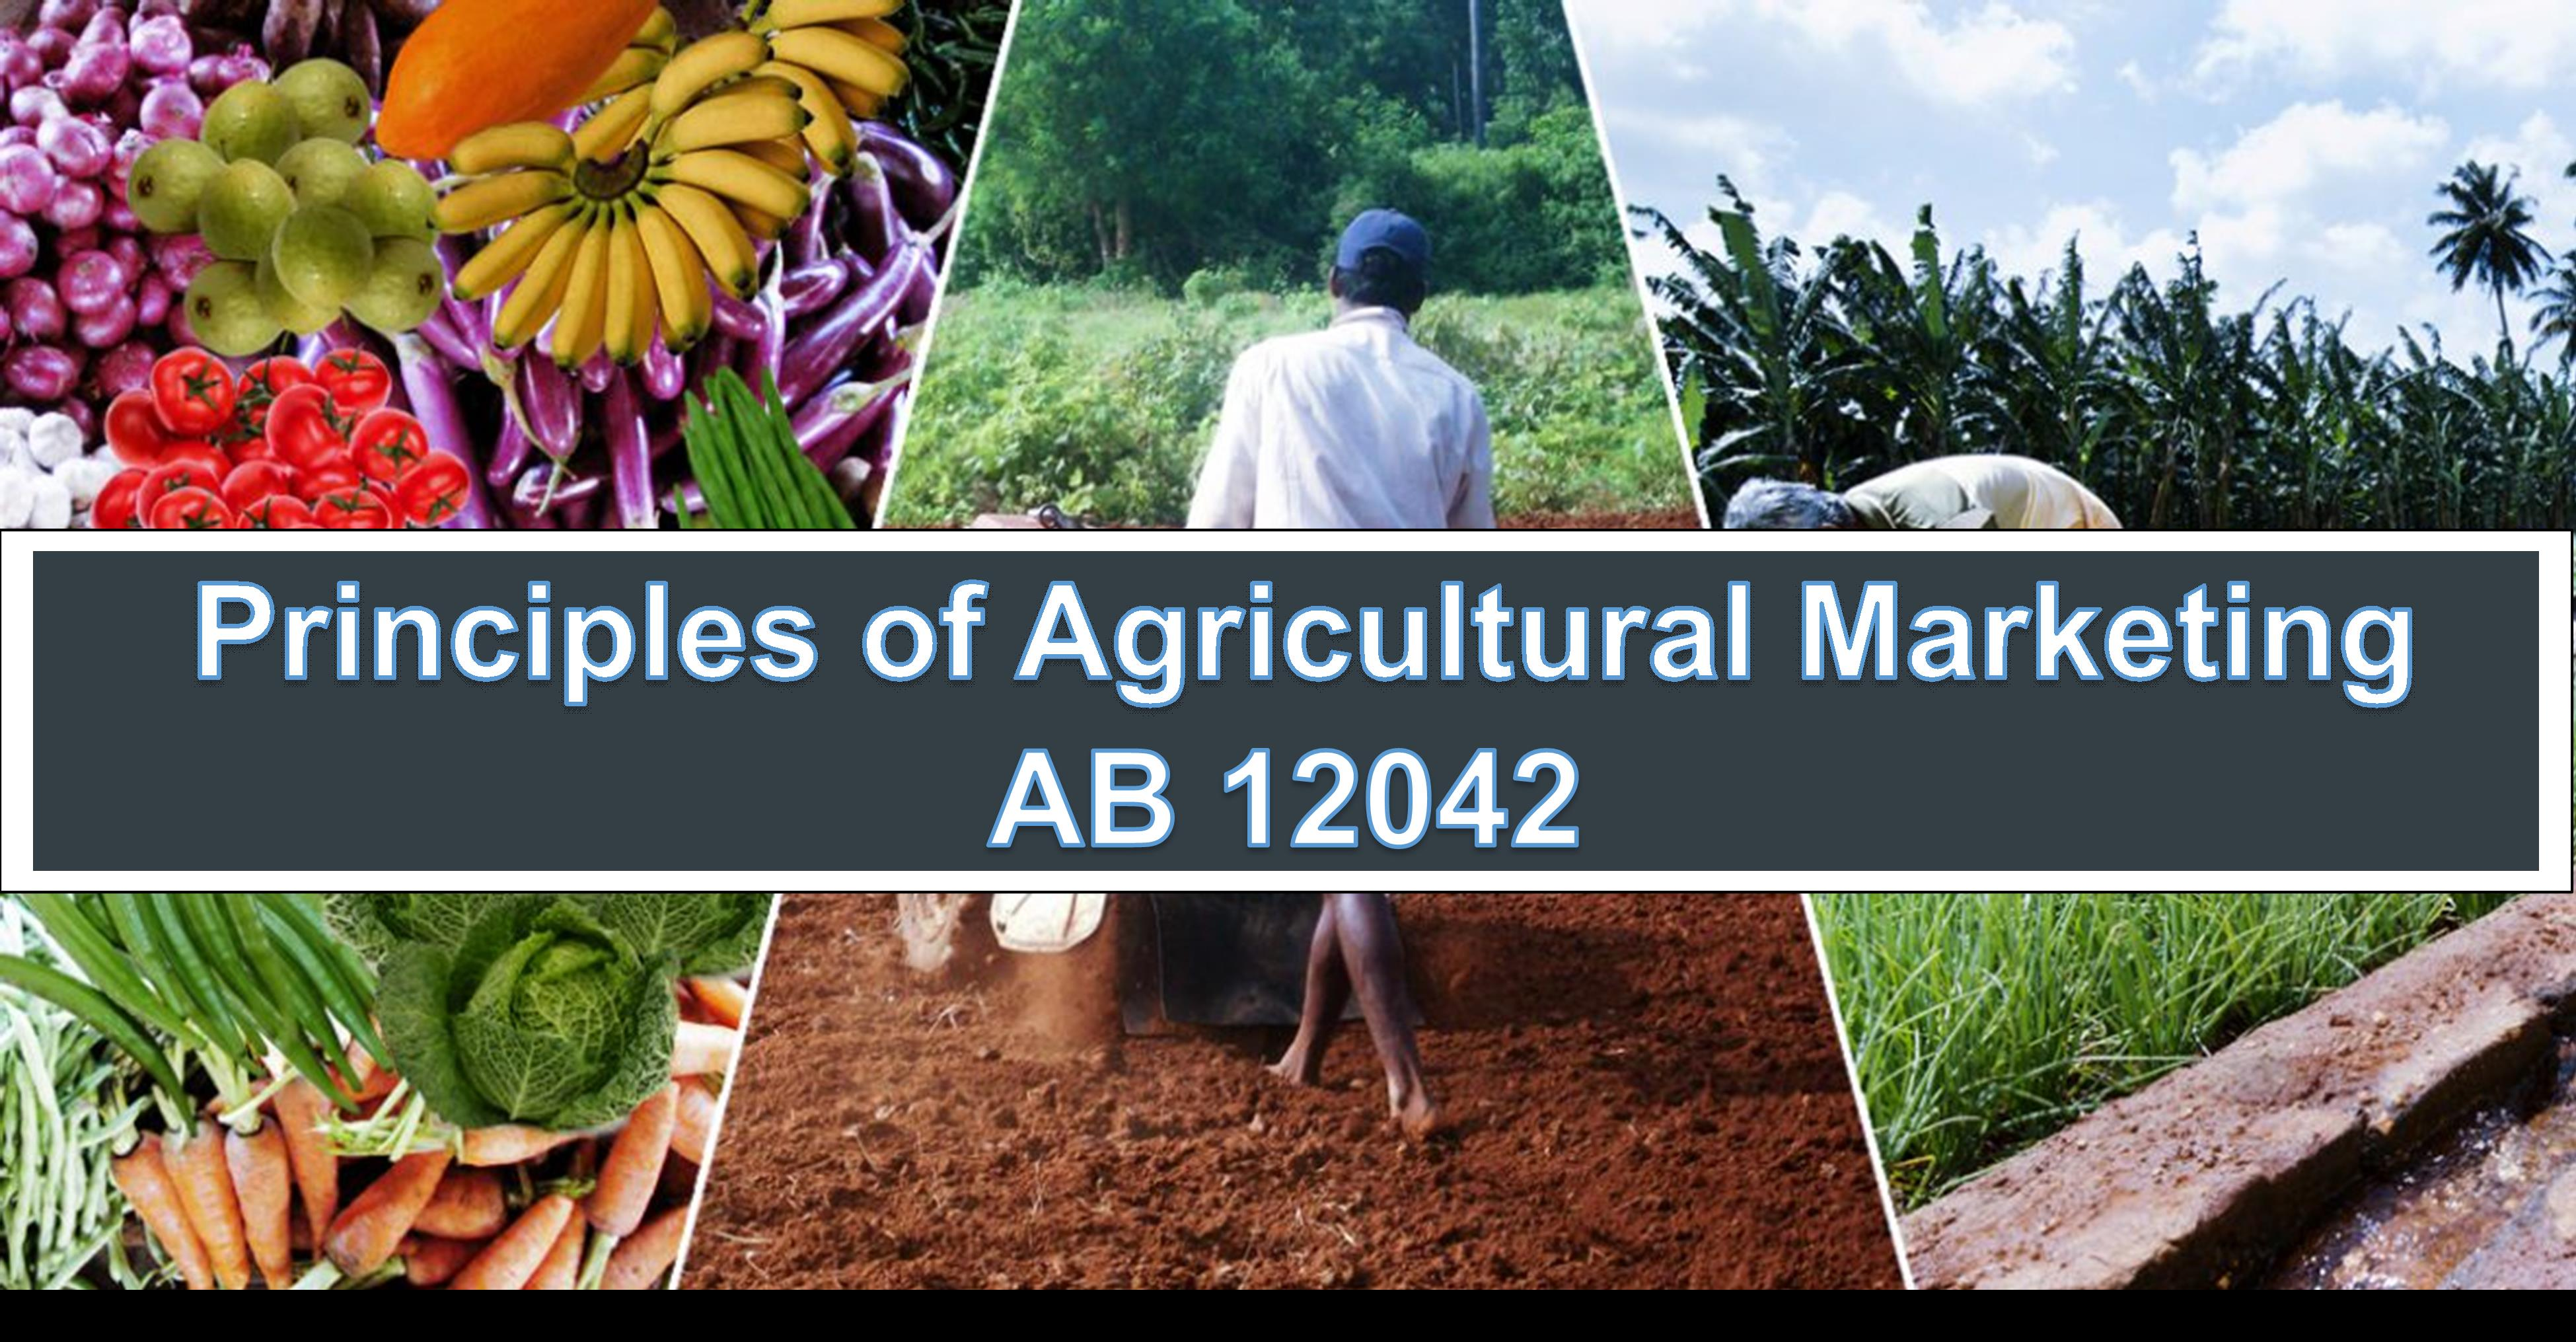 AB 12042 - Principles of Agricultural Marketing